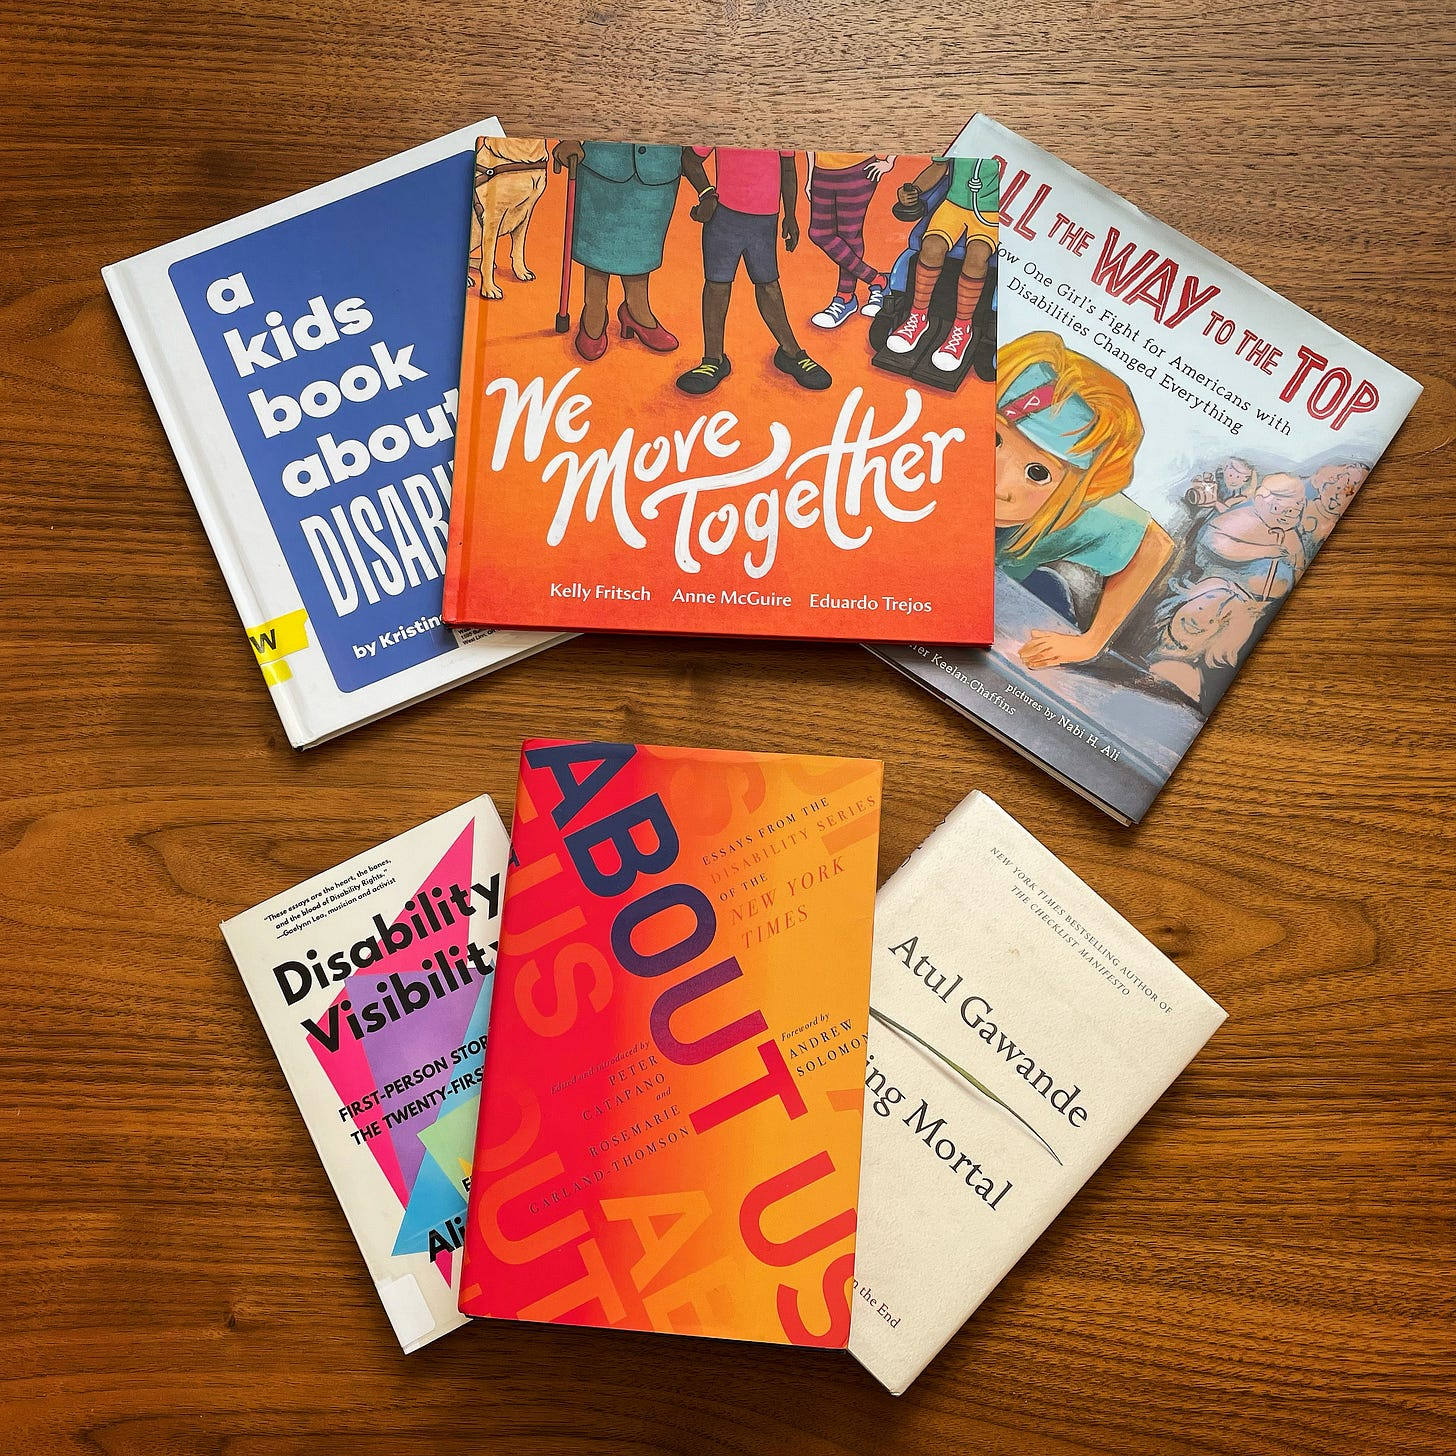 Six books are fanned out on a wood-grain background. On the top are A Kids Book About Disability, We Move Together, and All the Way to the Top. On the bottom is Disability Visibility, About Us and Being Mortal.